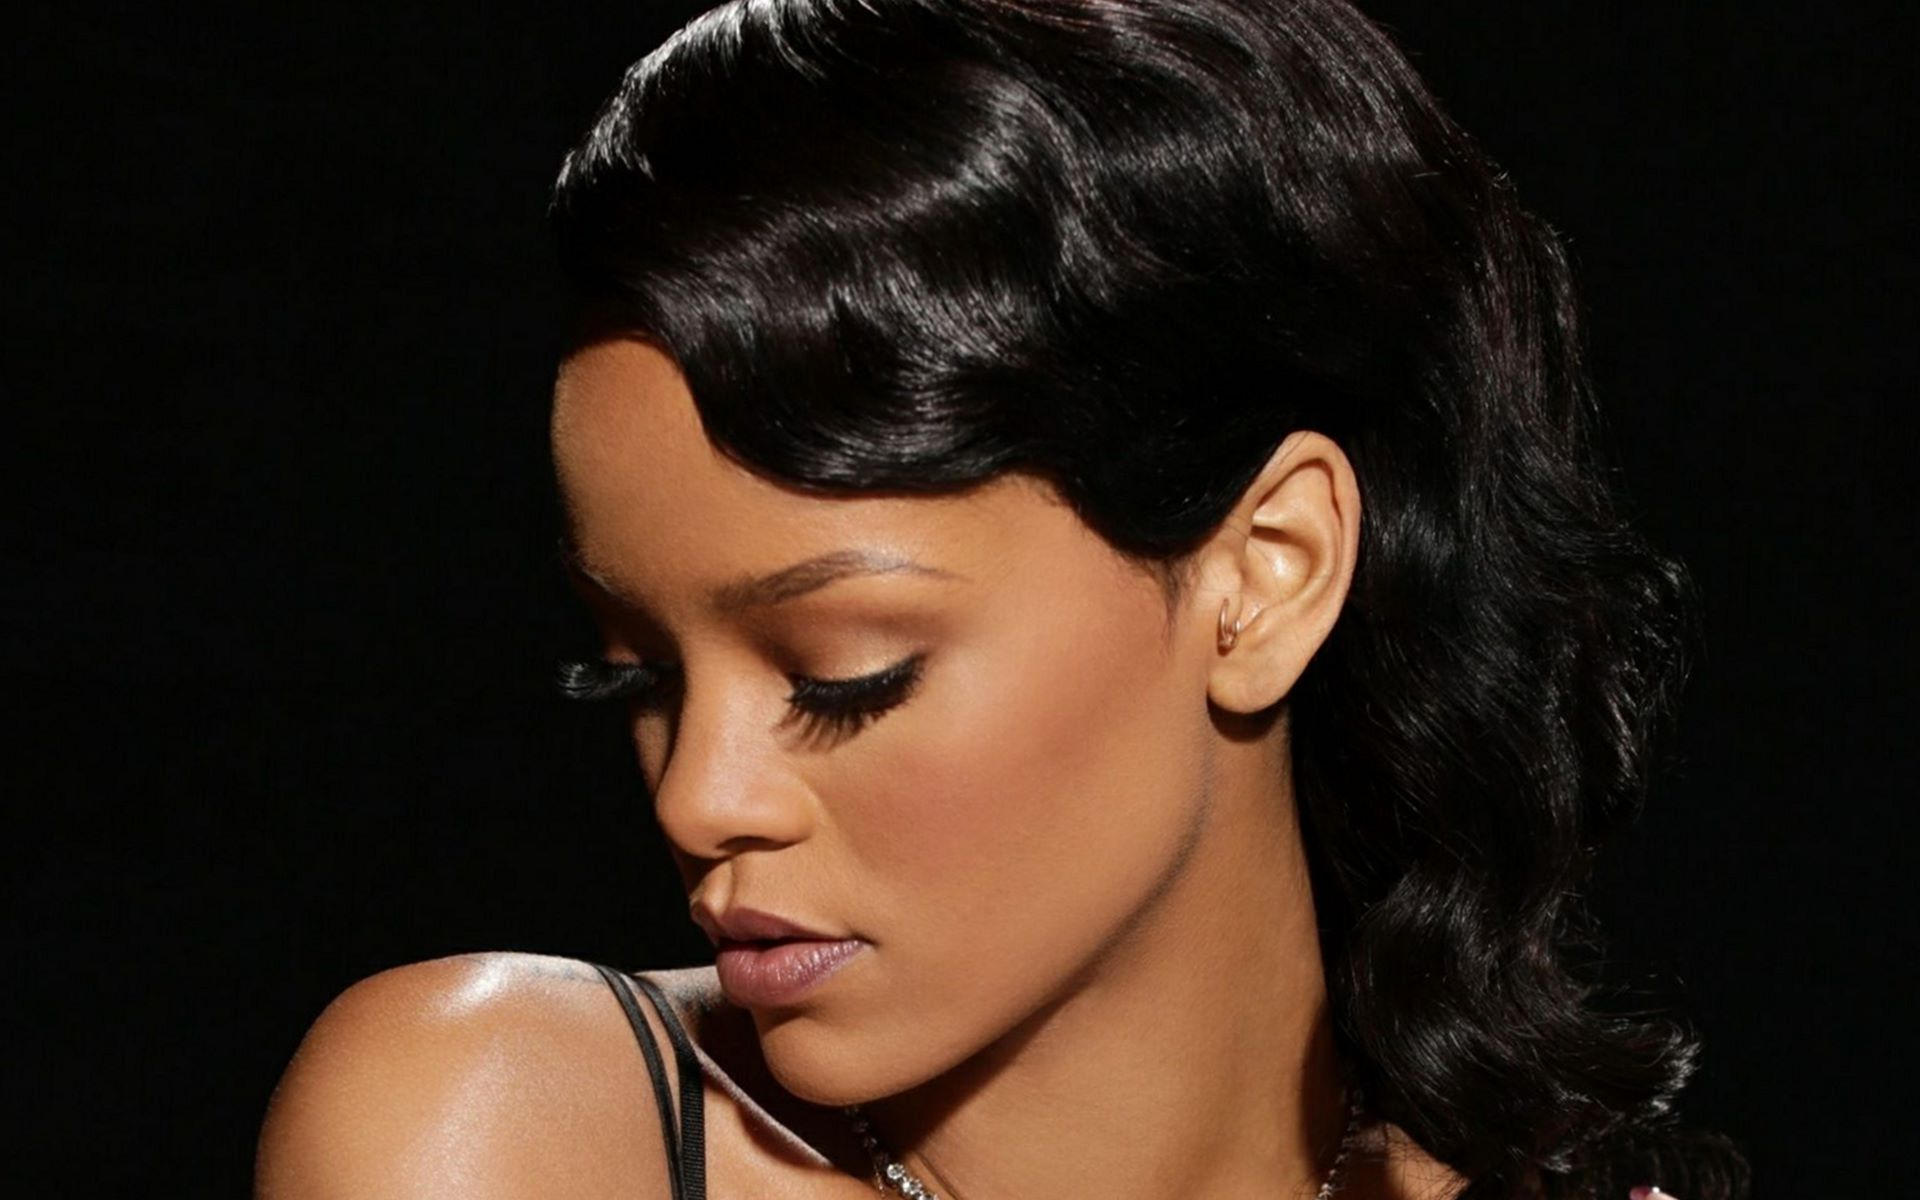 Rihanna Black Face Images Download Hd